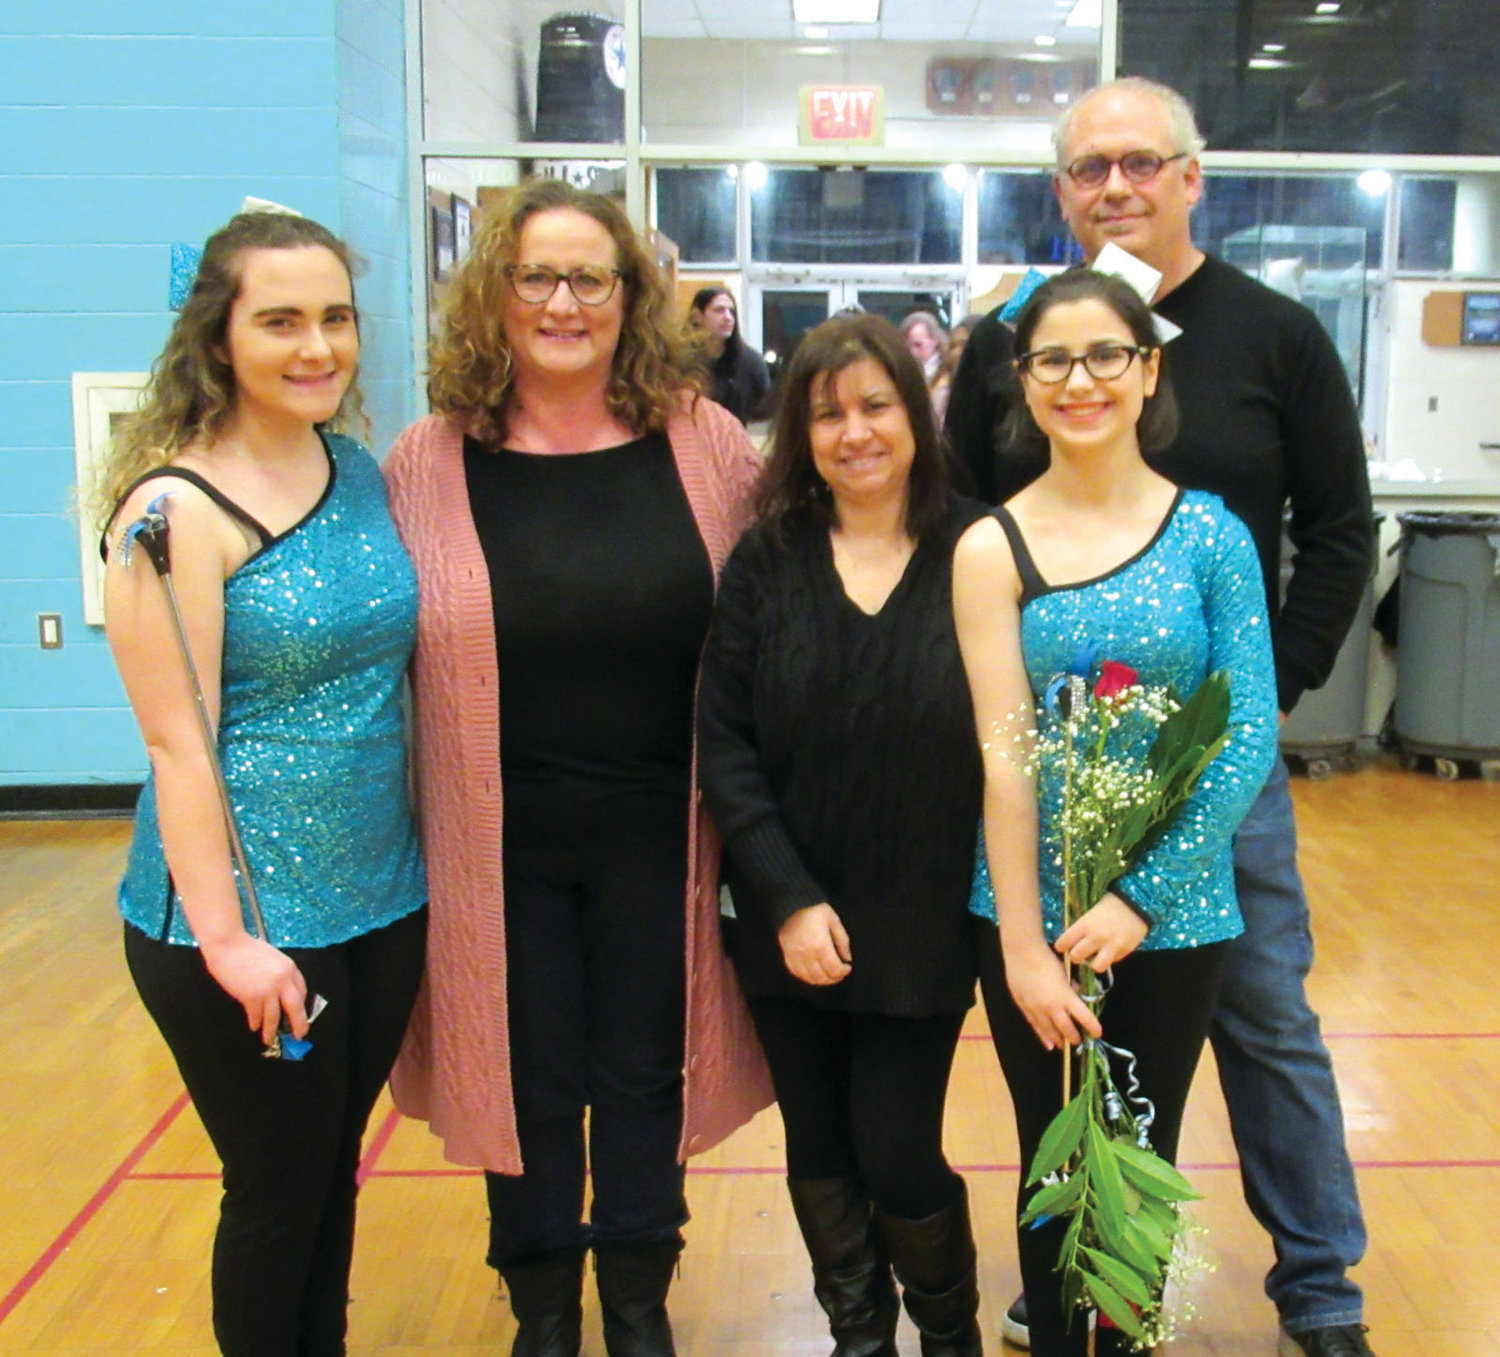 SUPPORT STAFF: The JHS marching Panther Band's senior majorettes – Jaihrie Mari Conti  and Cheryl Conti – were honored along with their parents Oviette DiLorenzo, Jaihrie Mari and Dominic Conti during Tuesday's Senior Night.